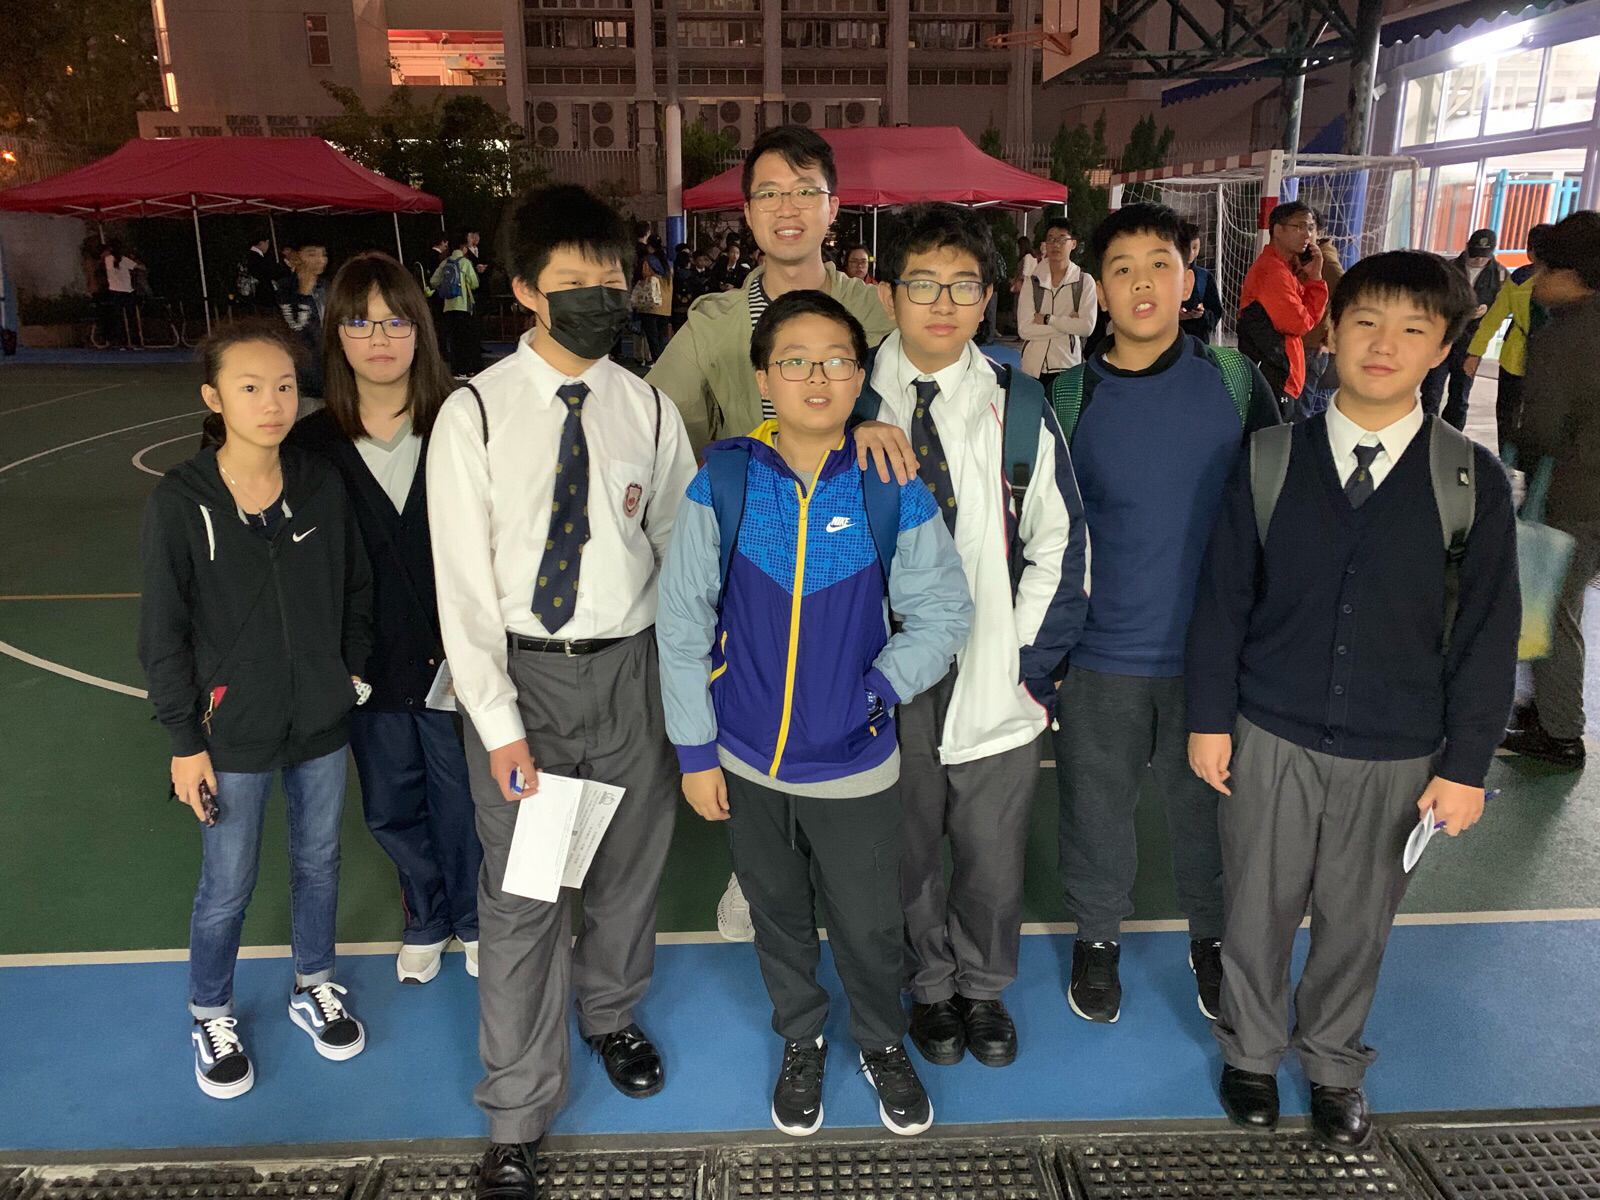 Our team members took a group photo together with the teachers.